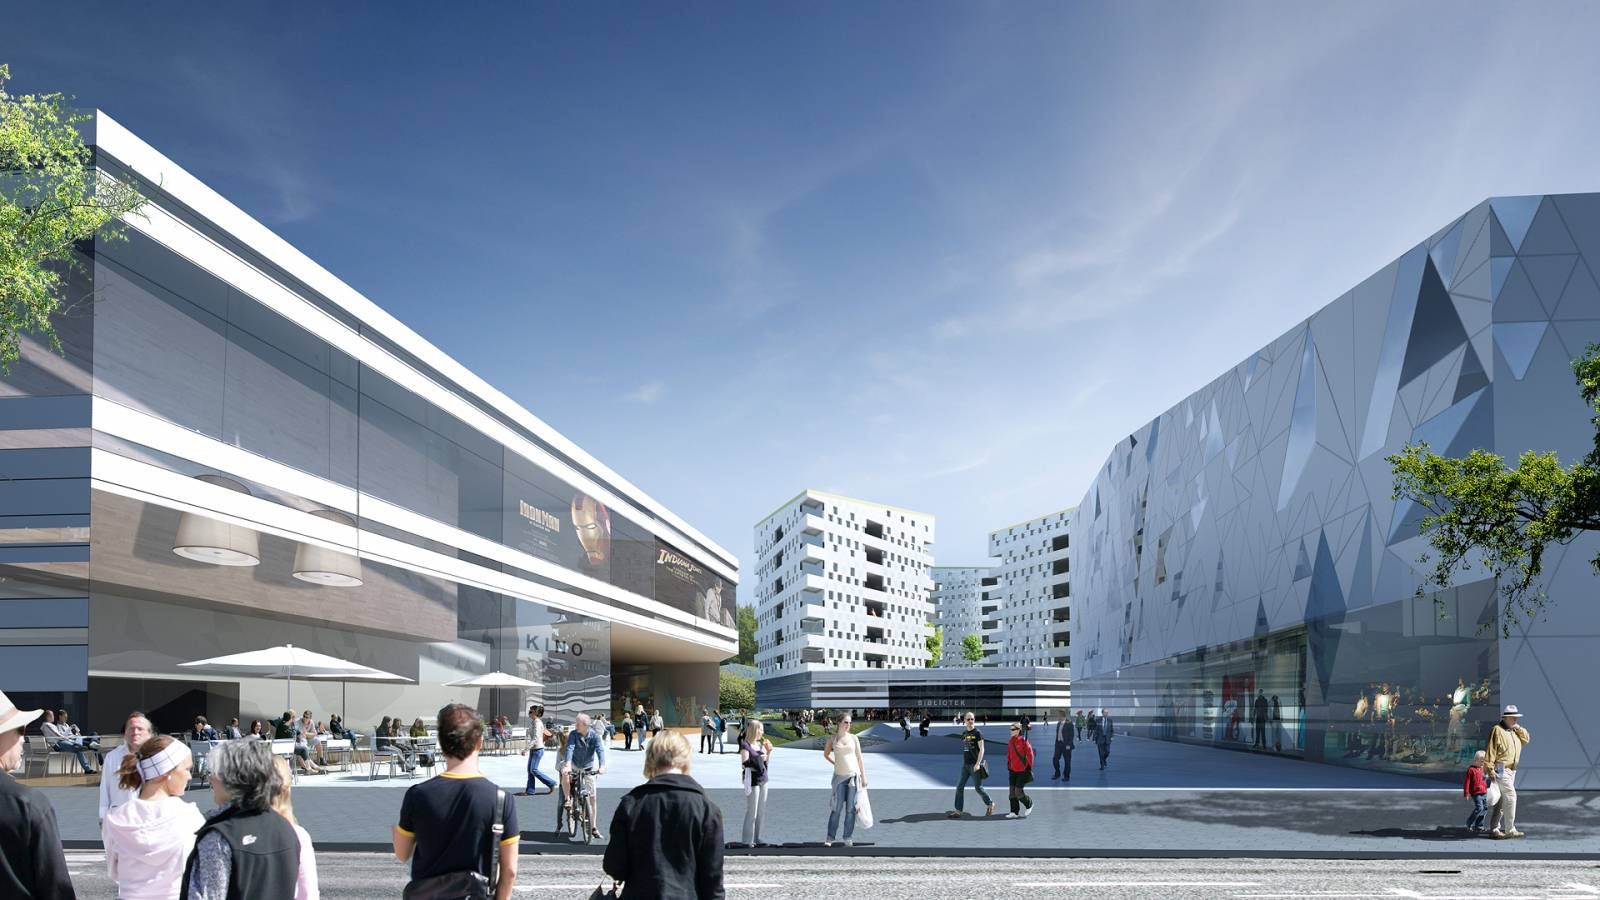 CULTURAL PLAZA - Økern Centre - SPOL Architects